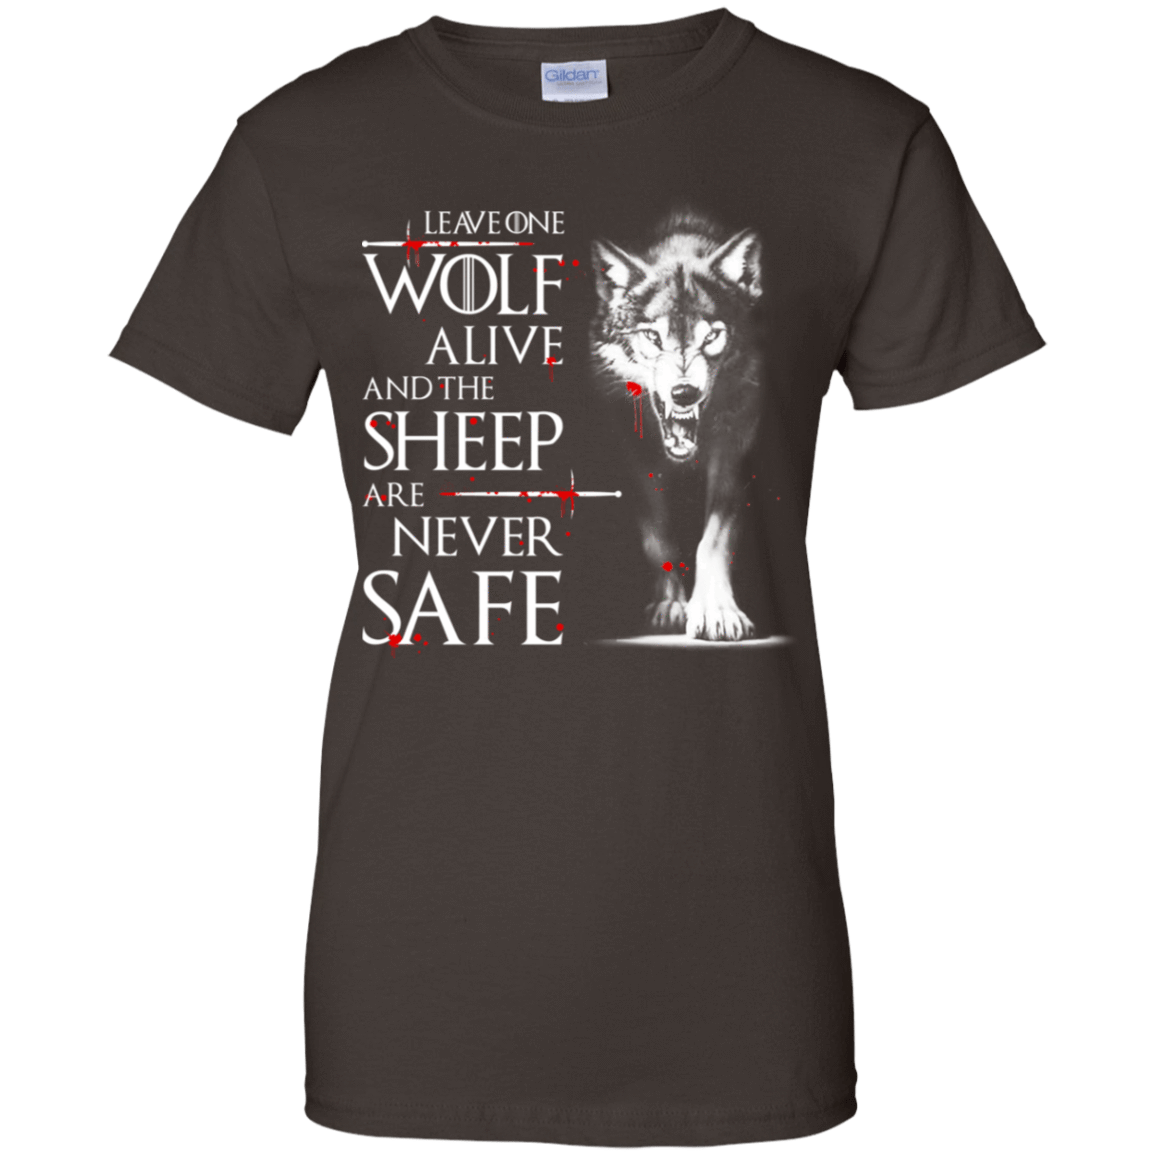 Leave One Wolf Alive And The Sheep Are Never Safe 939-9251-73422201-44702 - Tee Ript